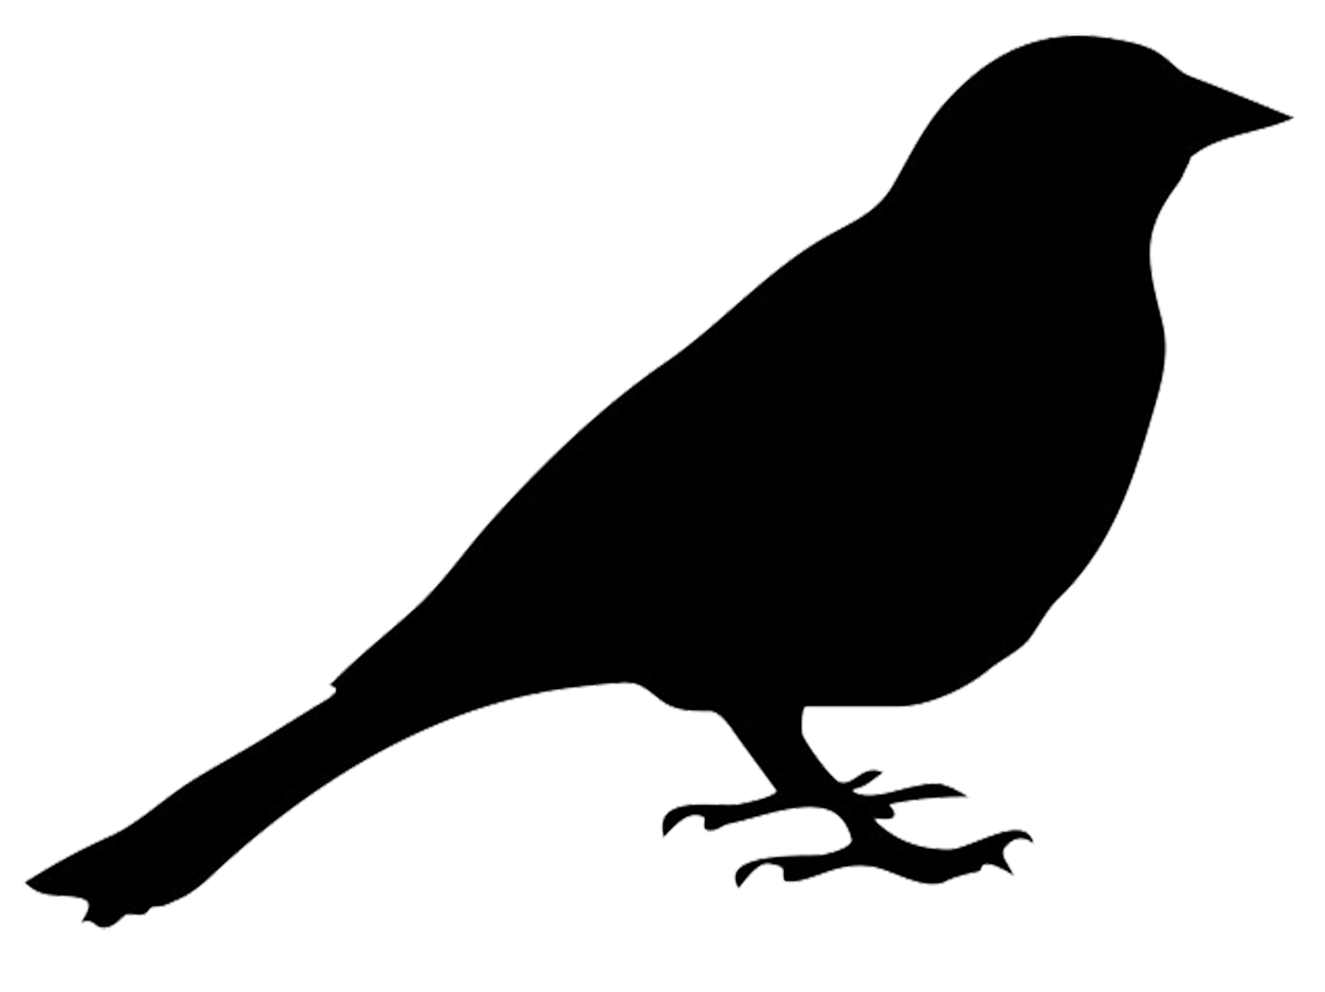 bird outlines bird outline png hd transparent bird outline hdpng images bird outlines